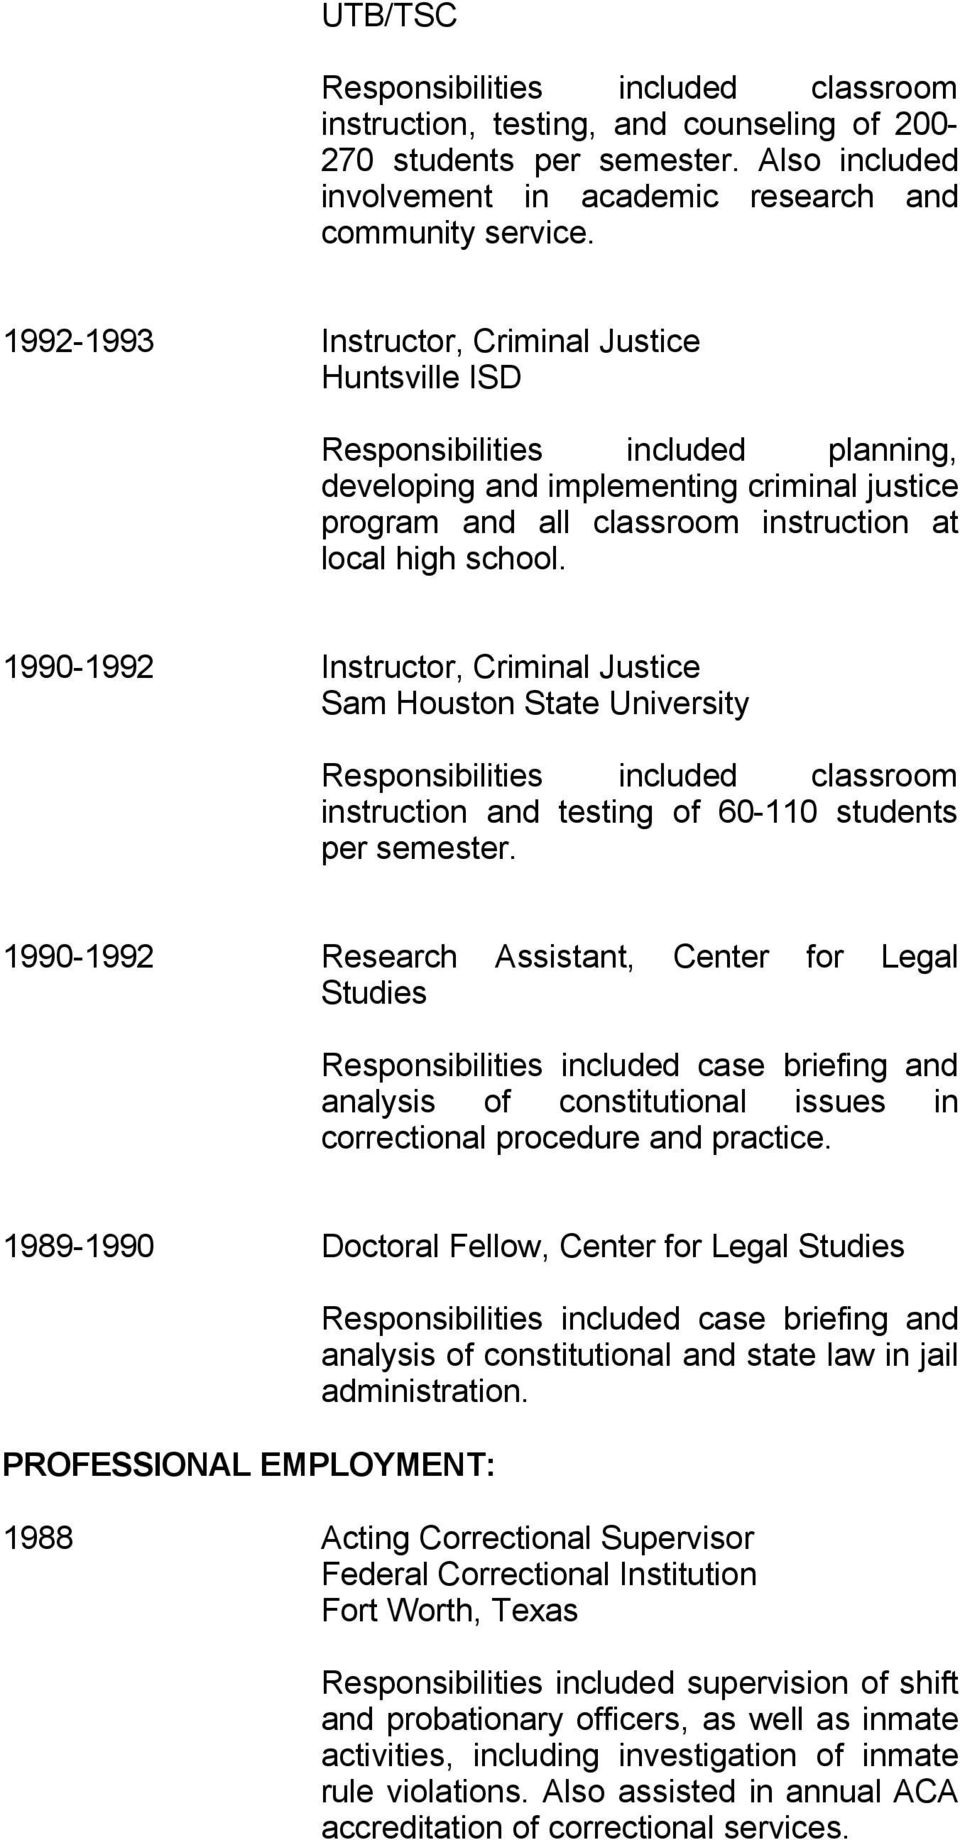 1990-1992 Instructor, Criminal Justice Sam Houston State University Responsibilities included classroom instruction and testing of 60-110 students per semester.